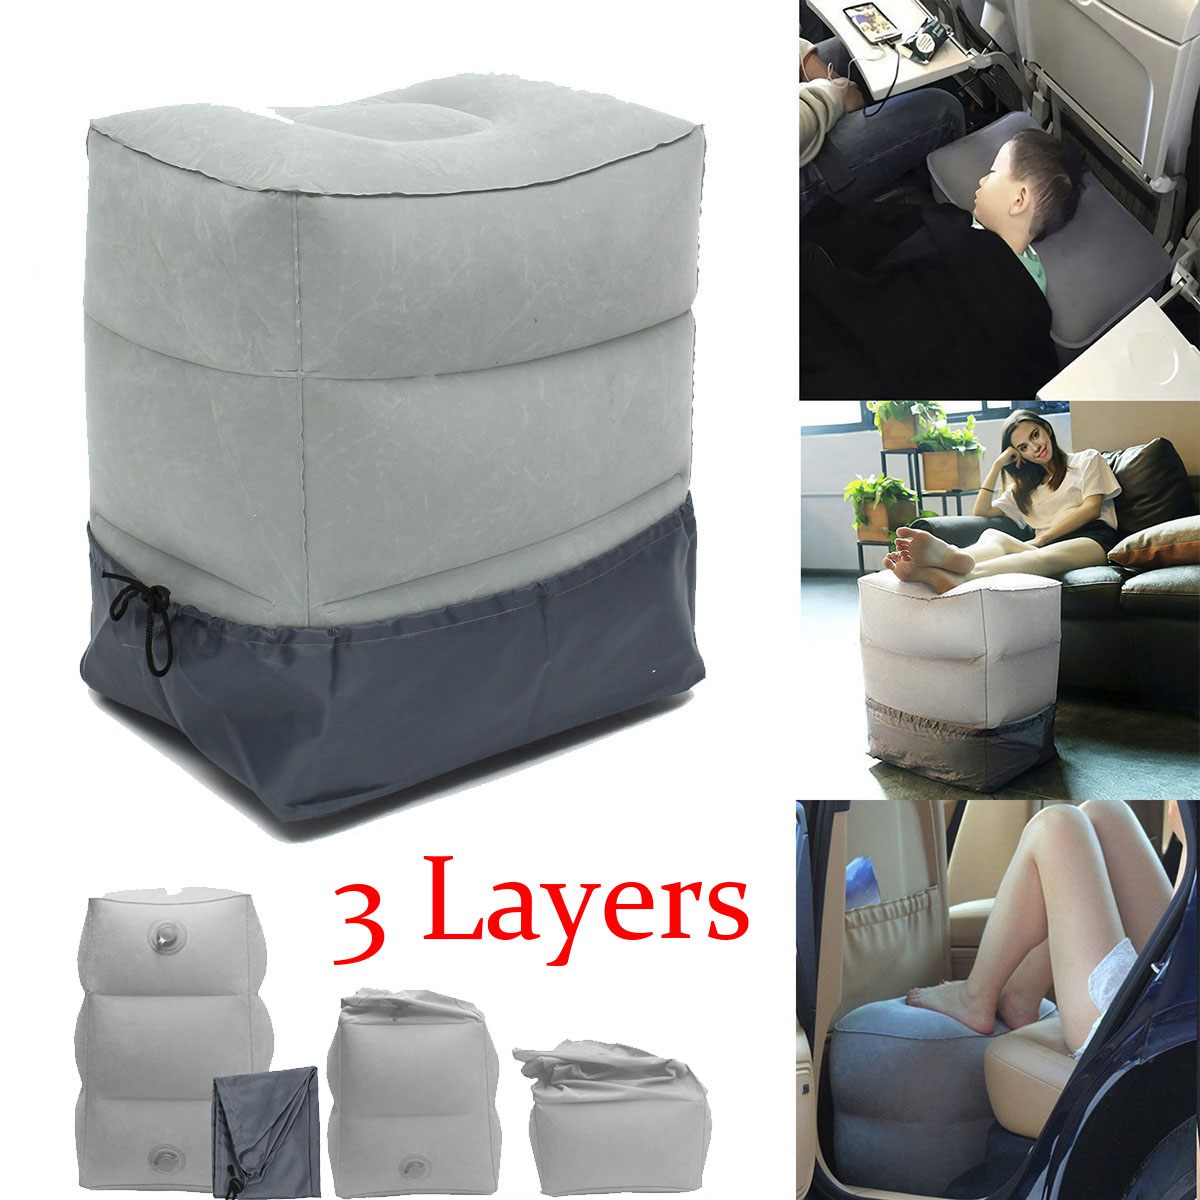 Inflatable Beds With Legs: 3 Layers Inflatable Travel Pillow Footrest Leg Foot Rest